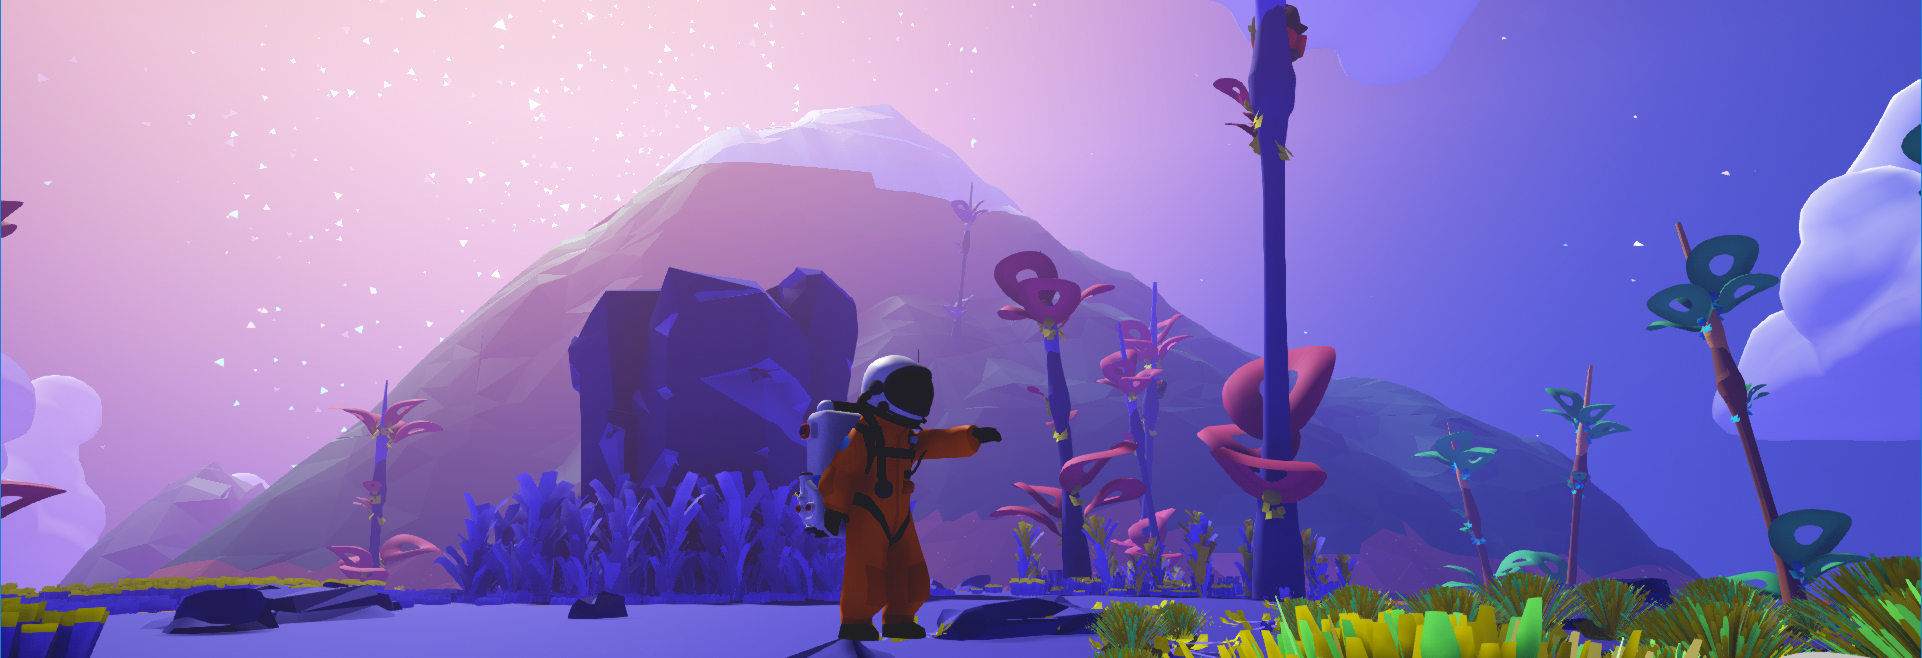 Making Research More Fun – Astroneer Blog